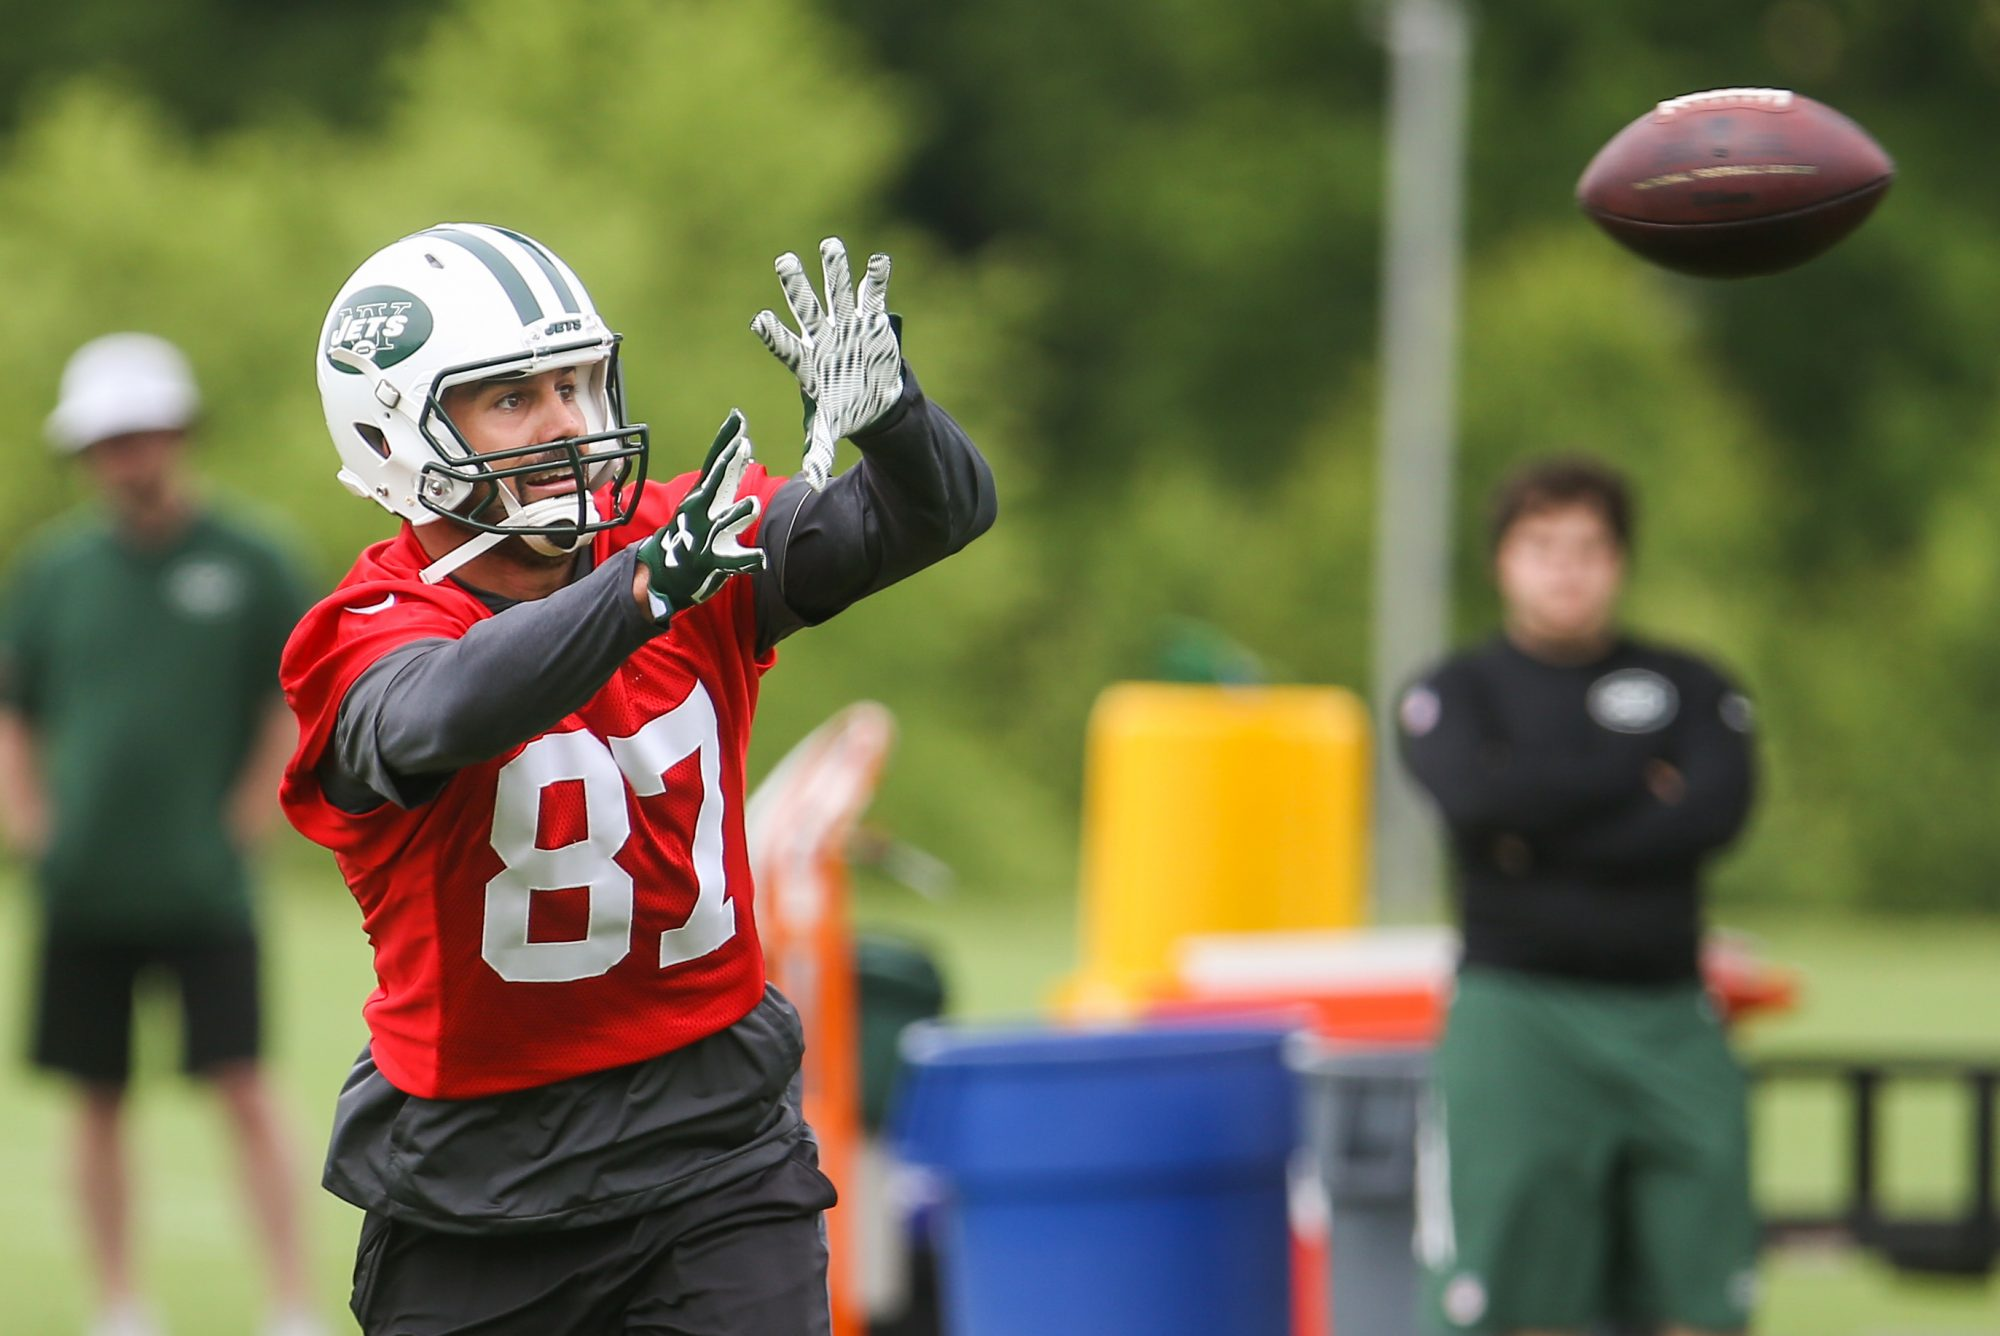 New York Jets Officially Release Eric Decker After Failing to Trade Him